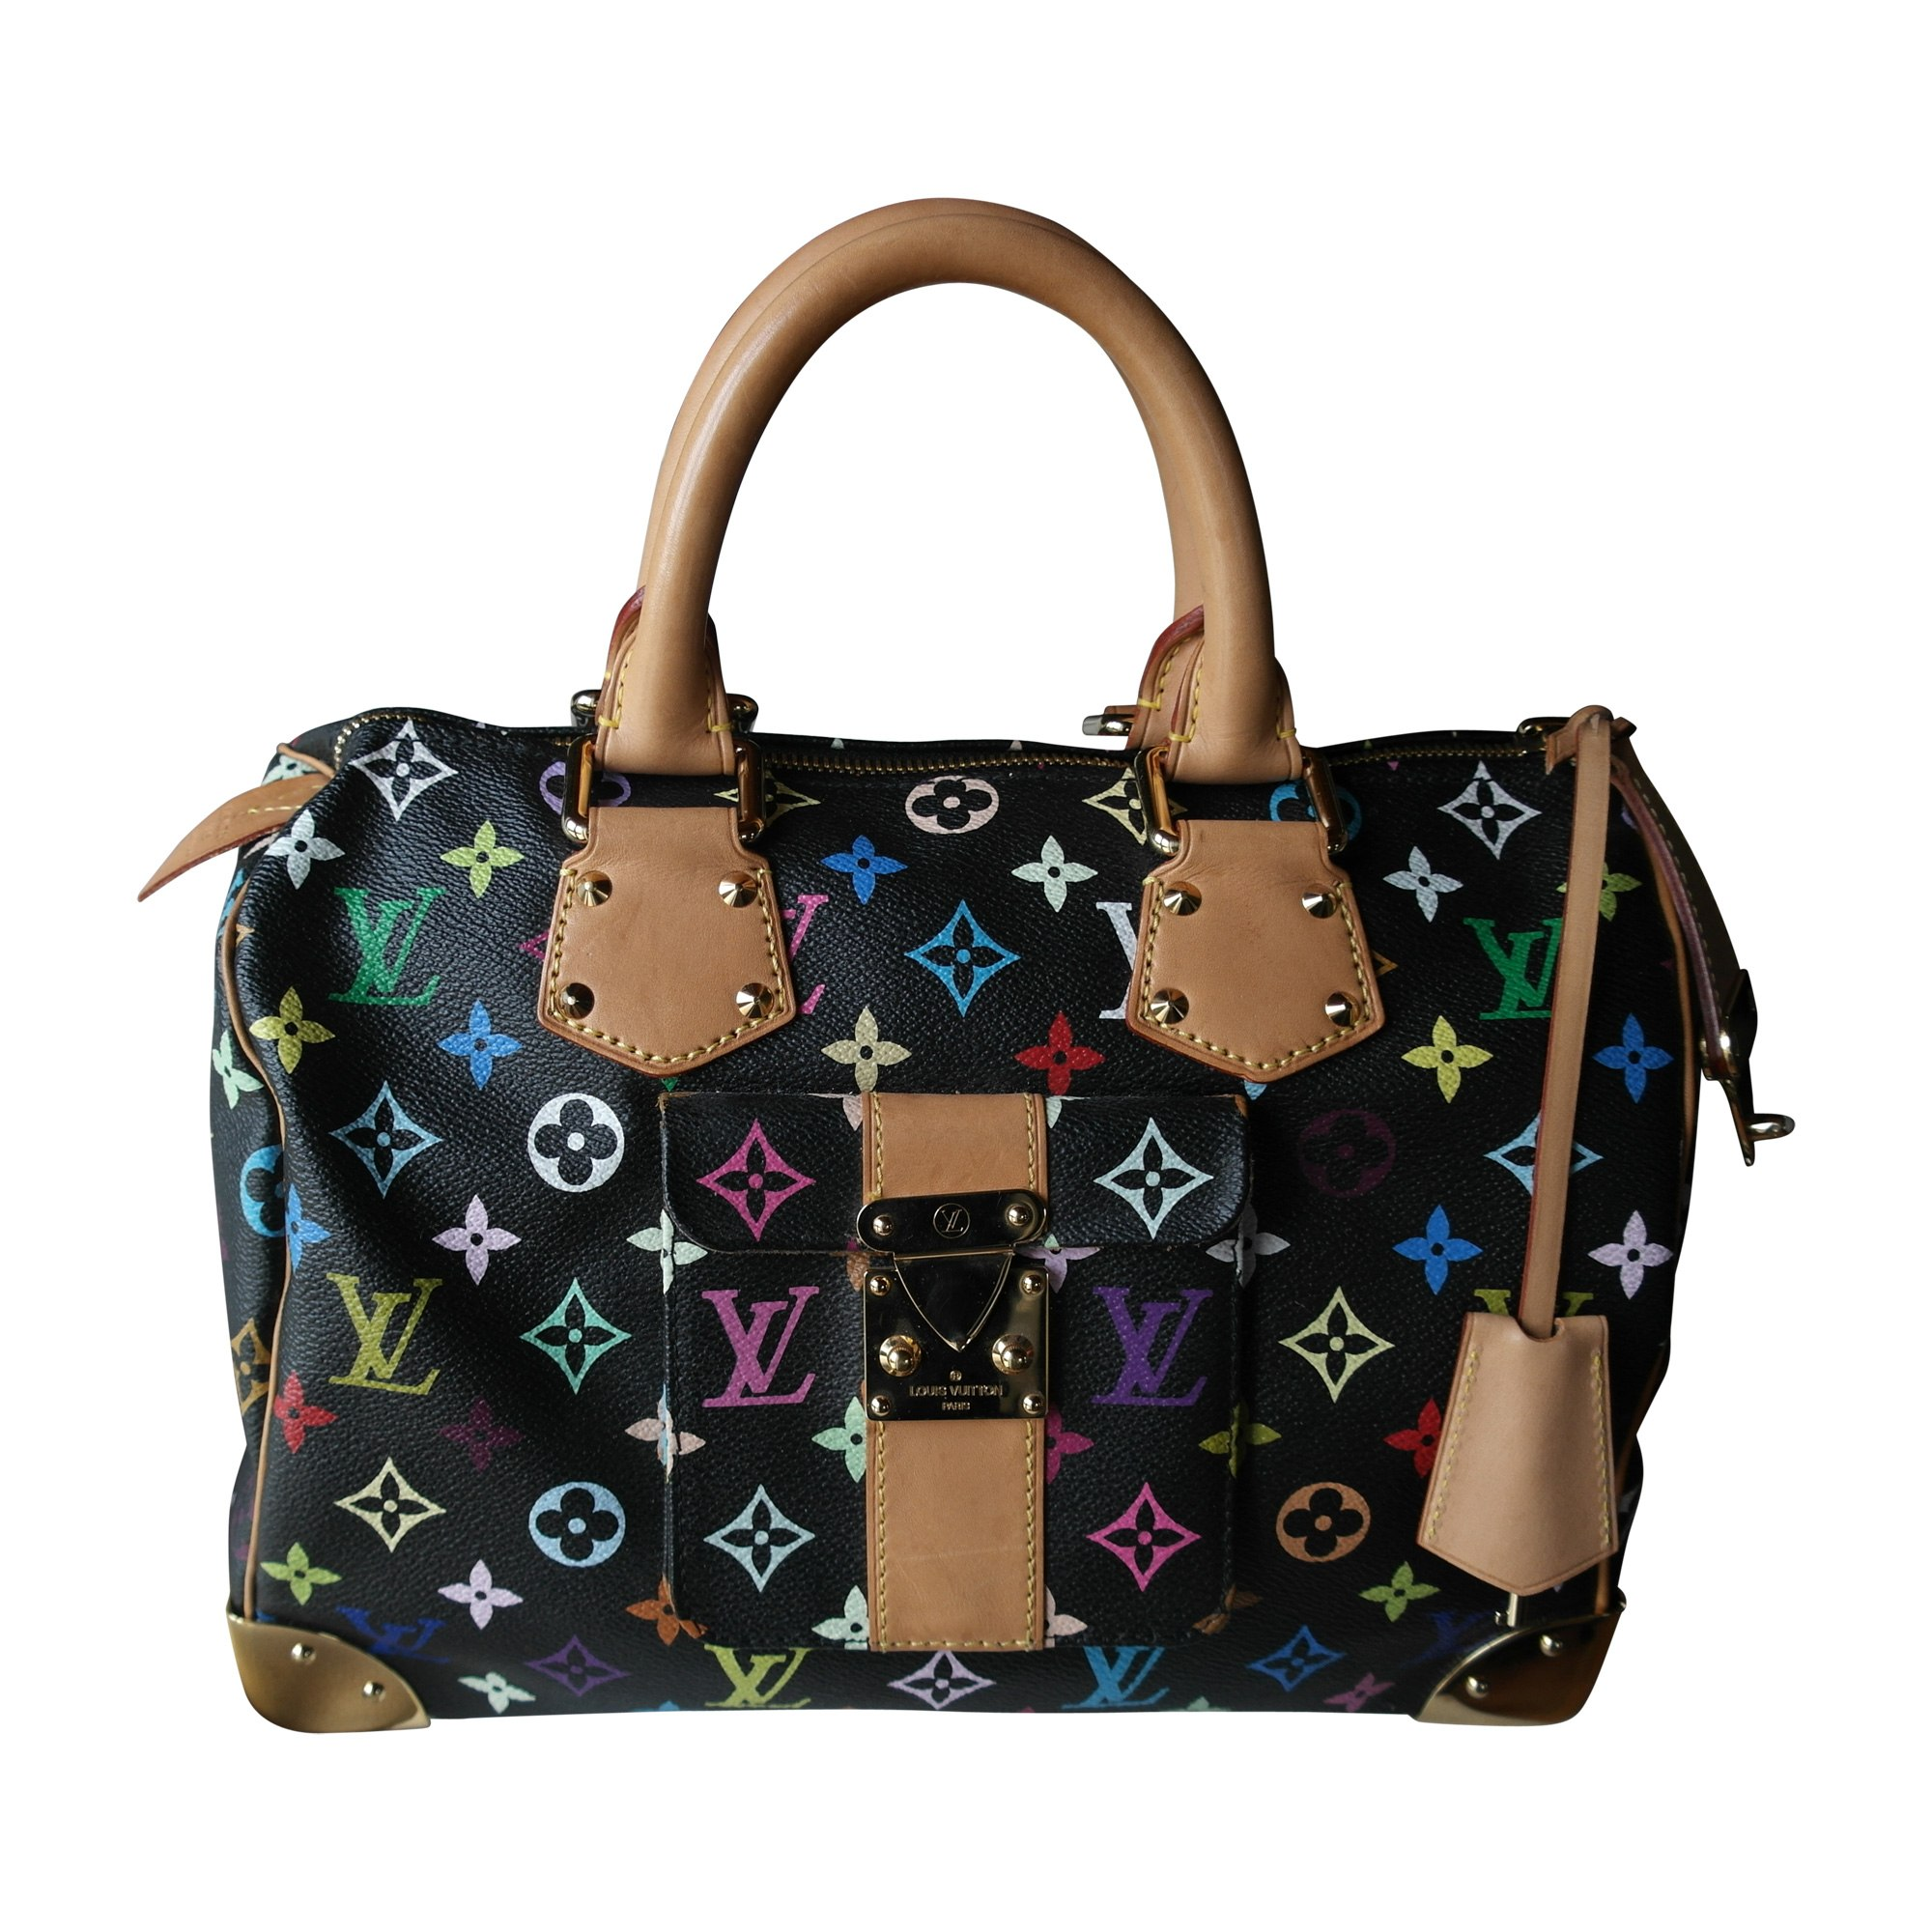 987e5daf44 Sac à main en cuir LOUIS VUITTON speedy noir - 7585721